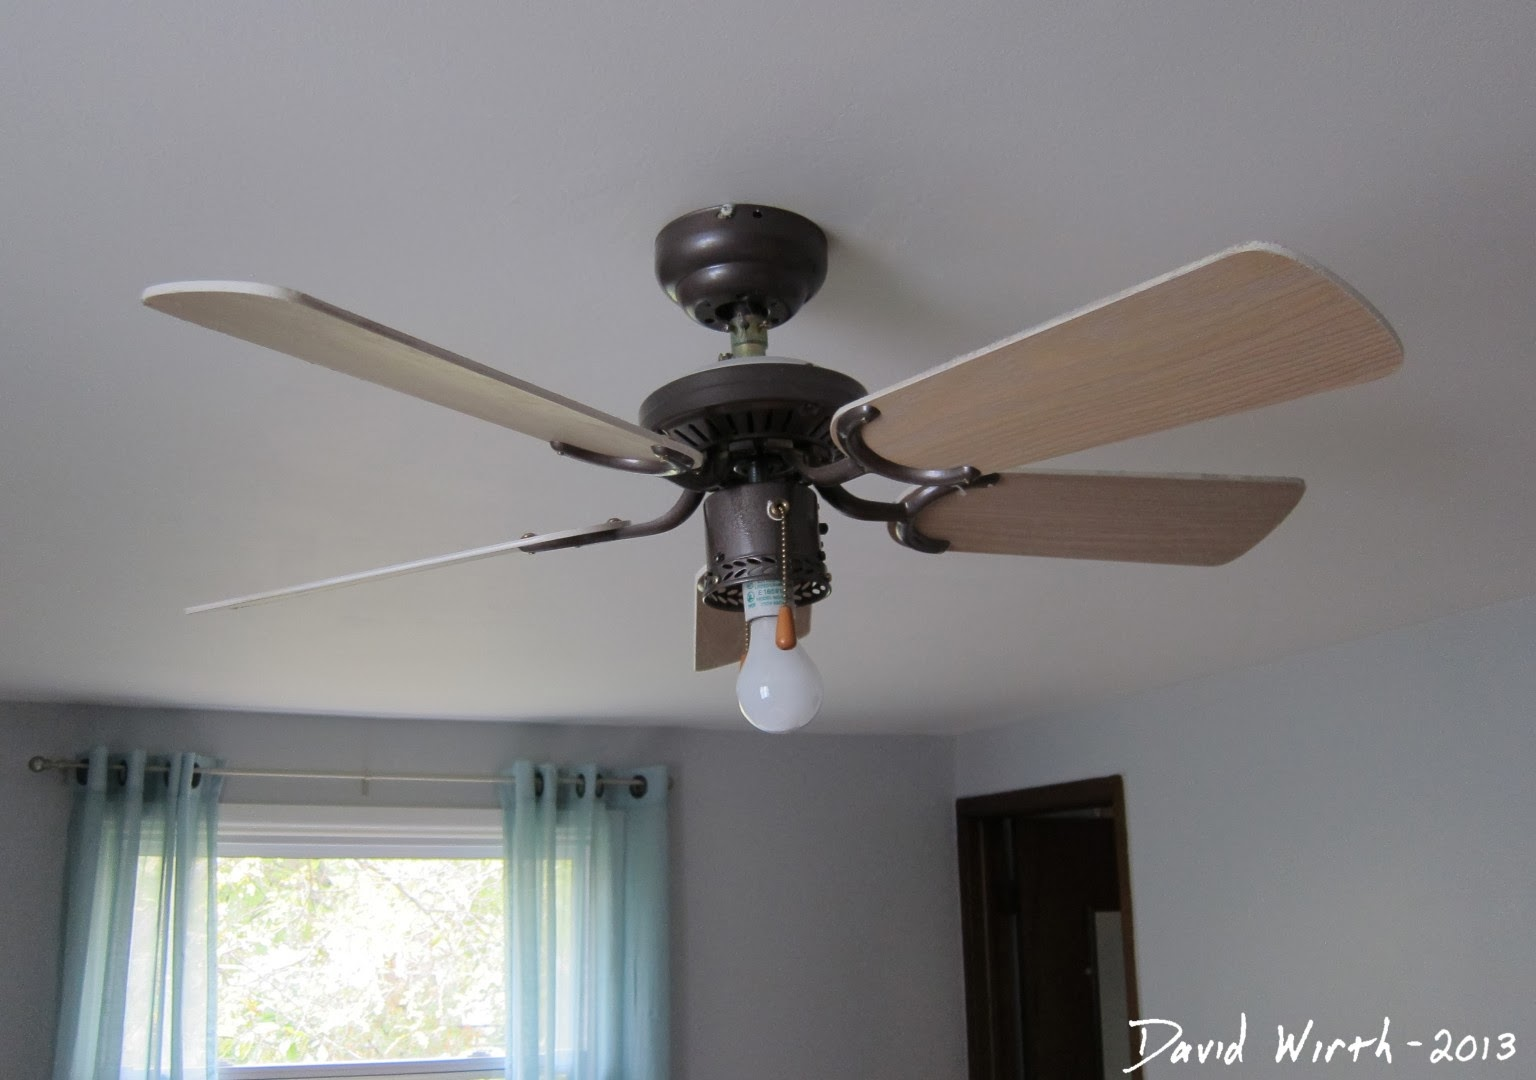 Replace Room Light with Fan